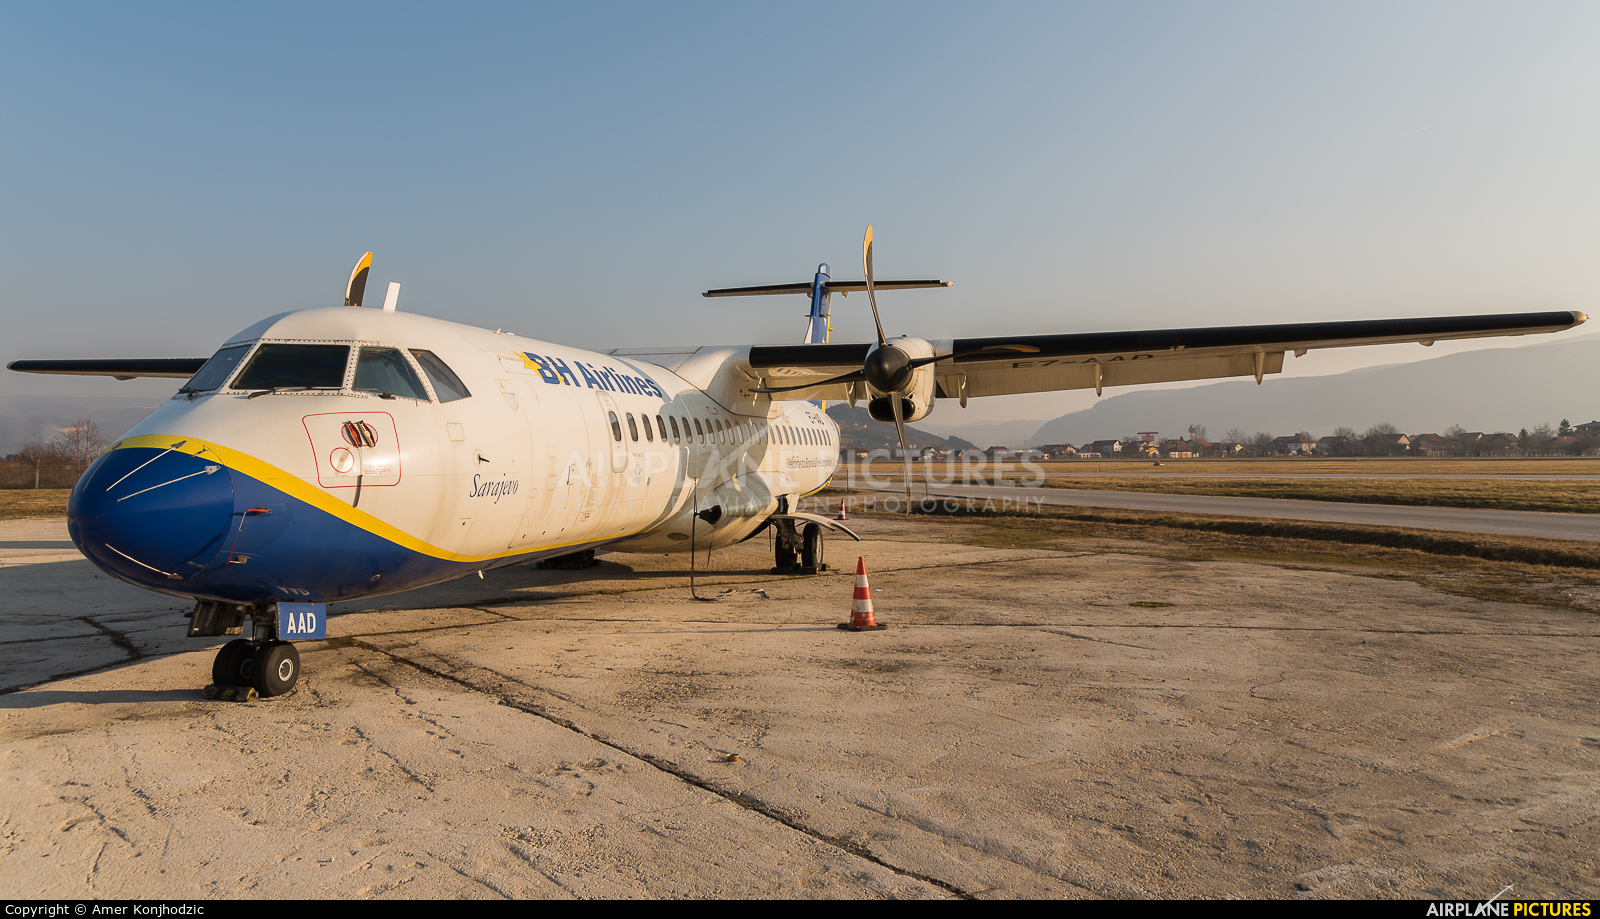 Air Bosnia - BH Airlines E7-AAD aircraft at Sarajevo - Butmir